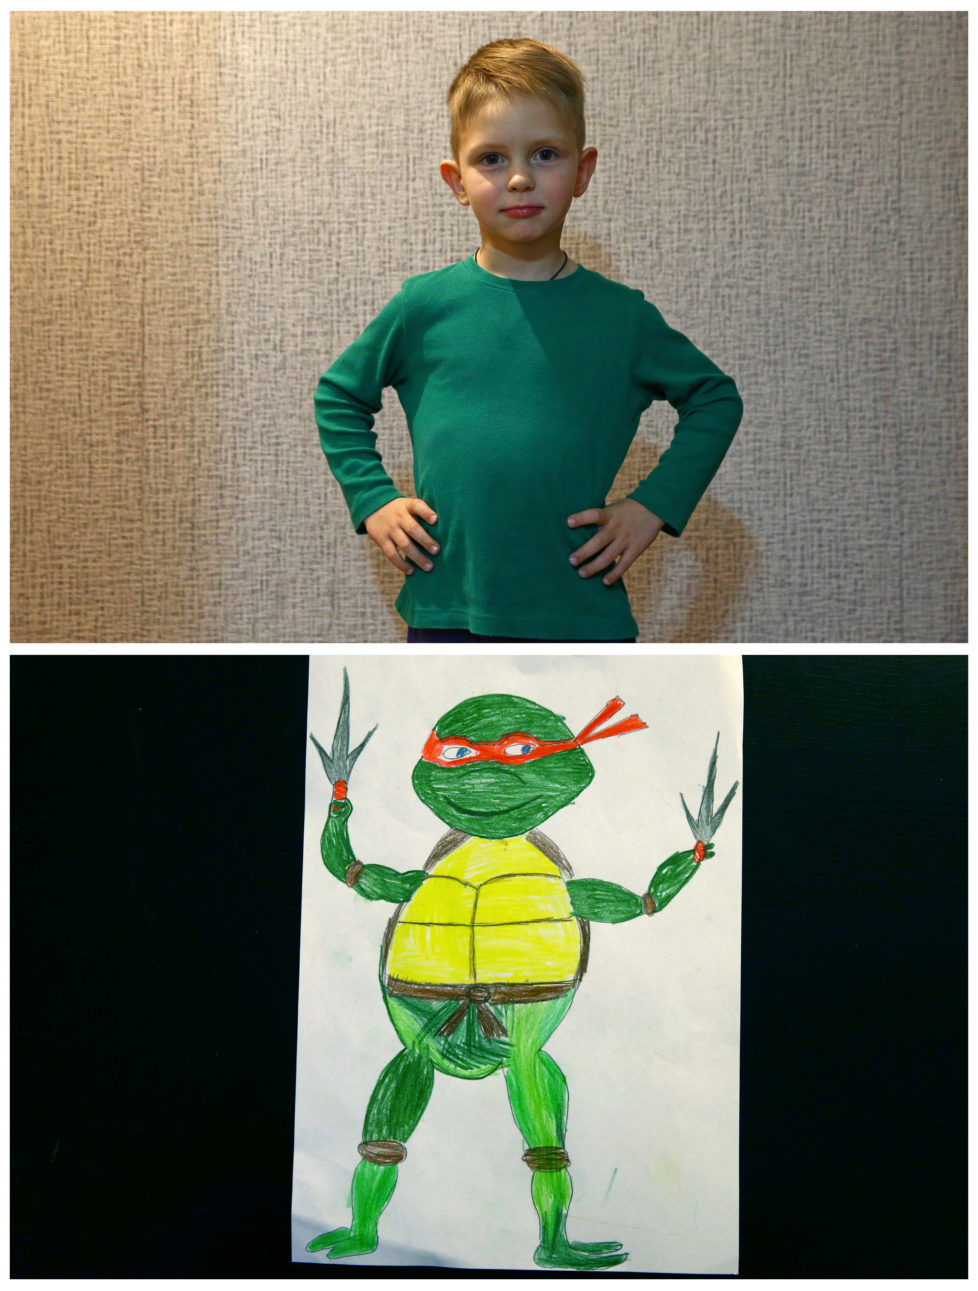 """A combination picture shows Dmitriy Kuchur, 5, posing for a photograph at his house (top) and his drawing of what he wants to get for Christmas from Santa, in Minsk, Belarus, November 23, 2016. Dmitriy wants Teenage Mutant Ninja Turtles. Reuters photographers around the world asked children to draw what they wanted to receive from Santa for Christmas. REUTERS/Vasily Fedosenko SEARCH """"CHRISTMAS WISHES"""" FOR THIS STORY. SEARCH """"WIDER IMAGE"""" FOR ALL STORIES. - RTSV37N"""